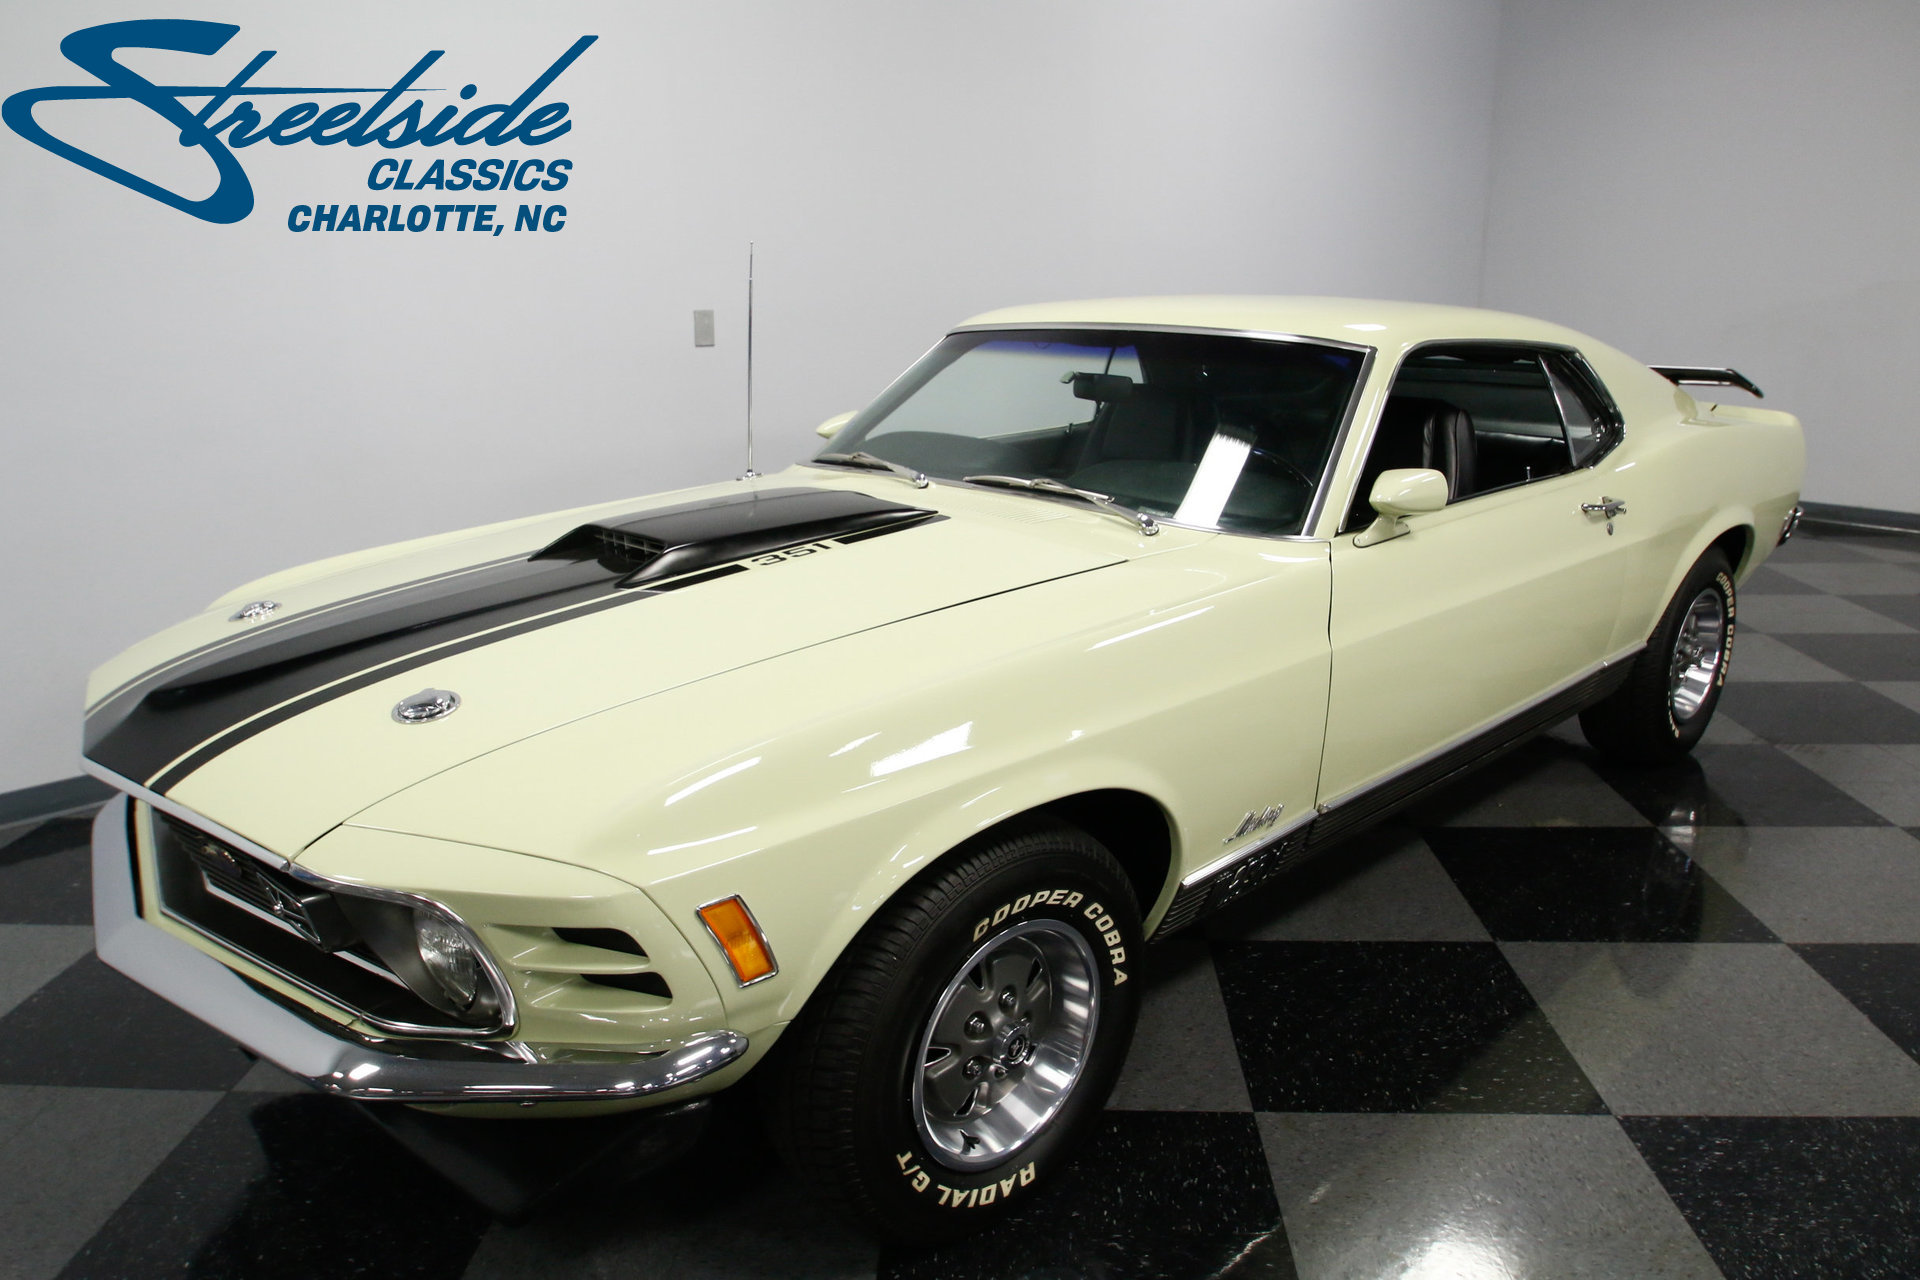 For Sale: 1970 Ford Mustang. Spincar view. Play Video